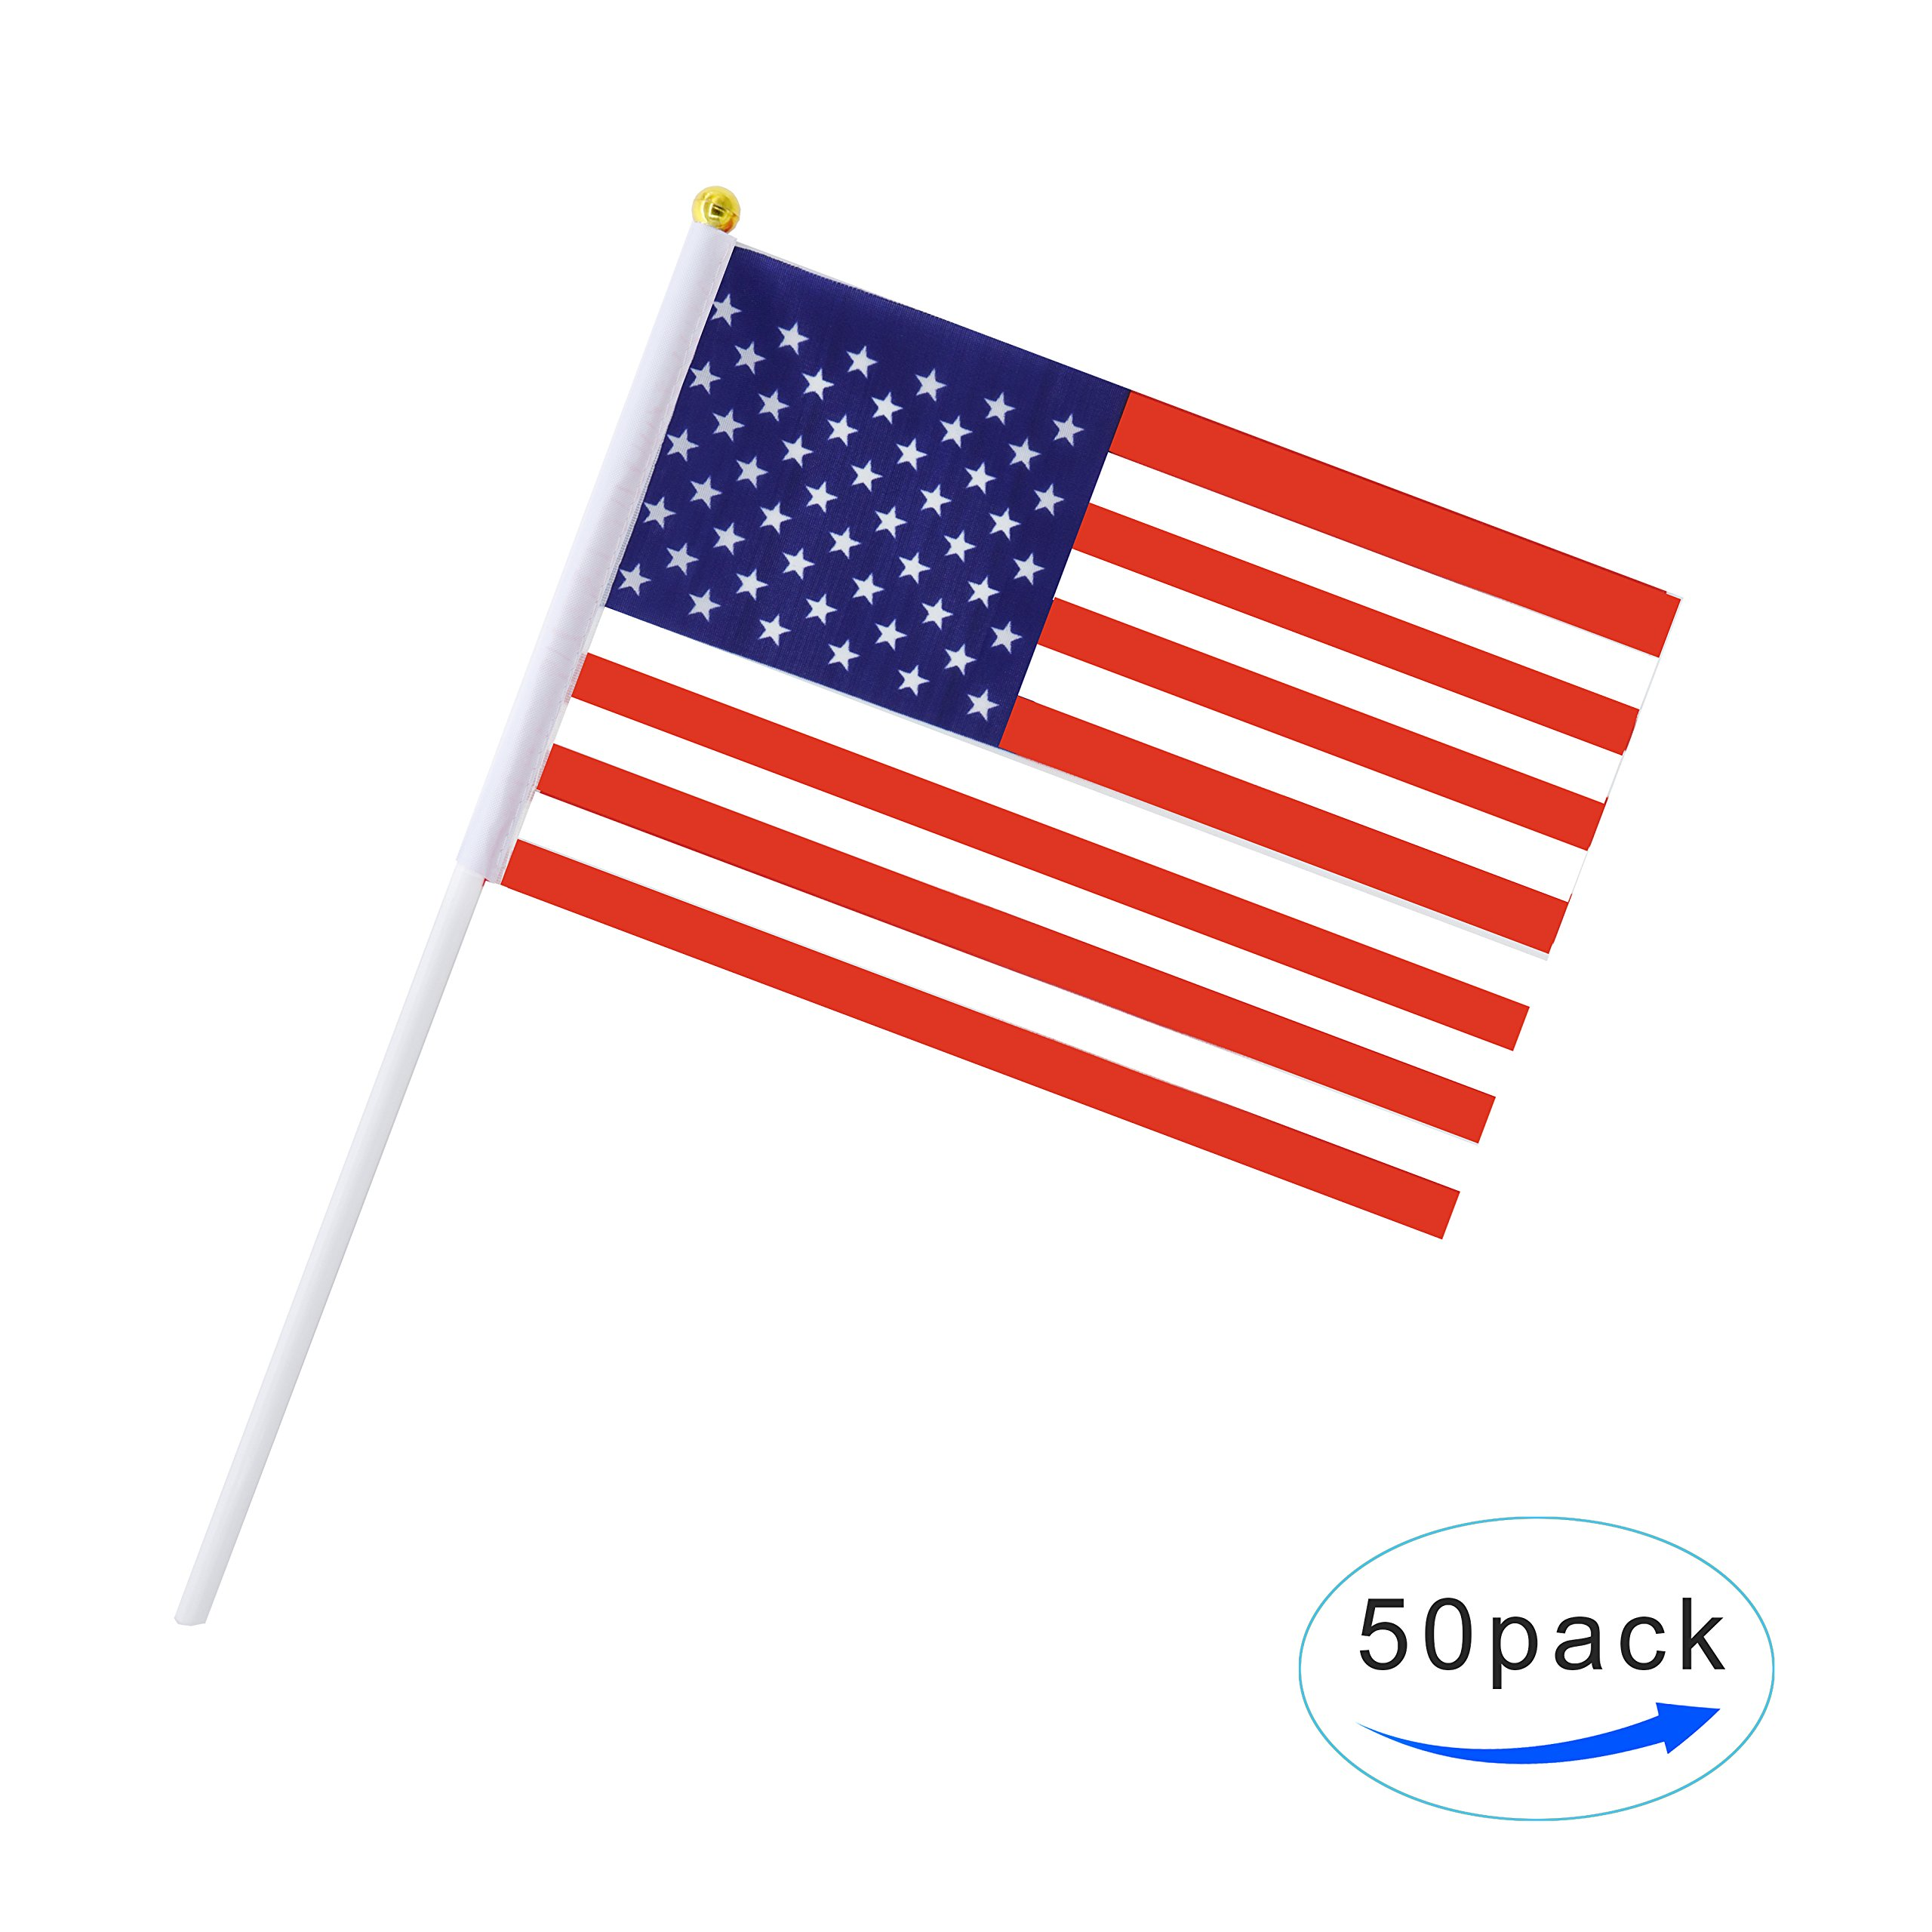 b8215525fdf4 Get Quotations · 50 Pack Hand Held US American Flag Stick Flag Mini Flag  Round Top National Country Flags